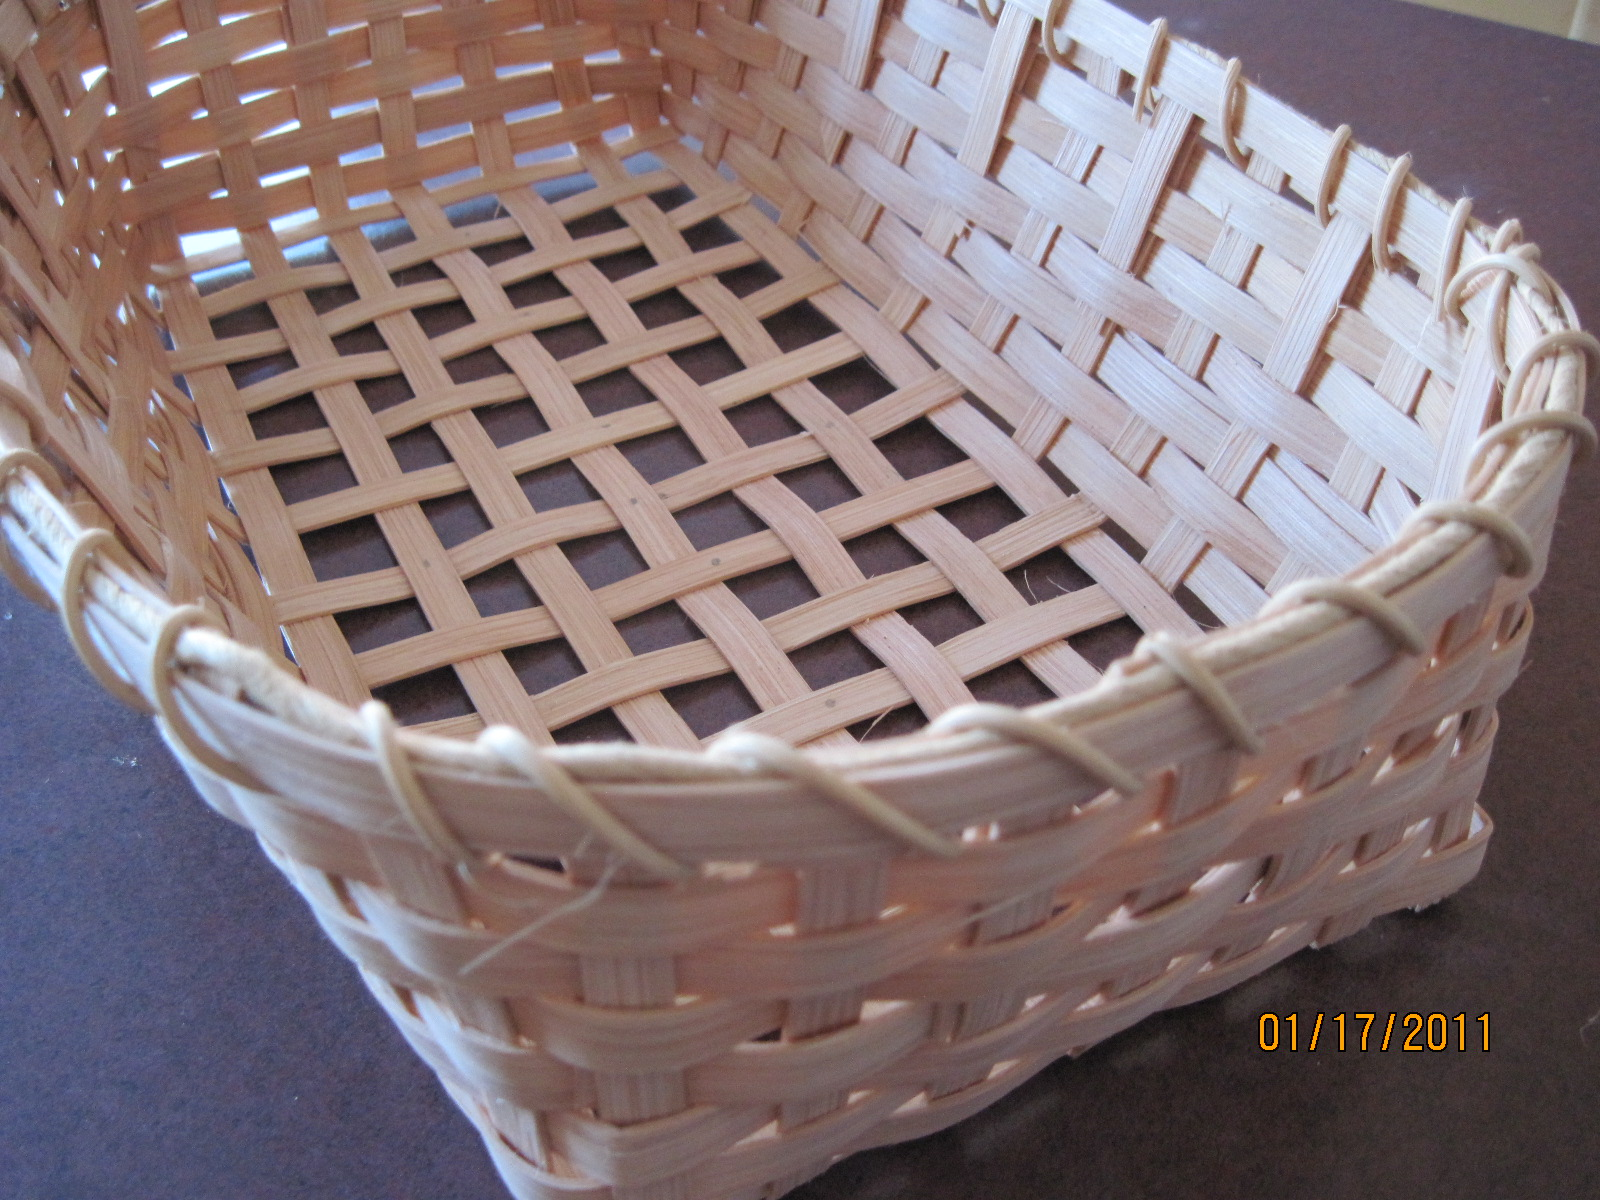 John Toft Basketry: January 2011